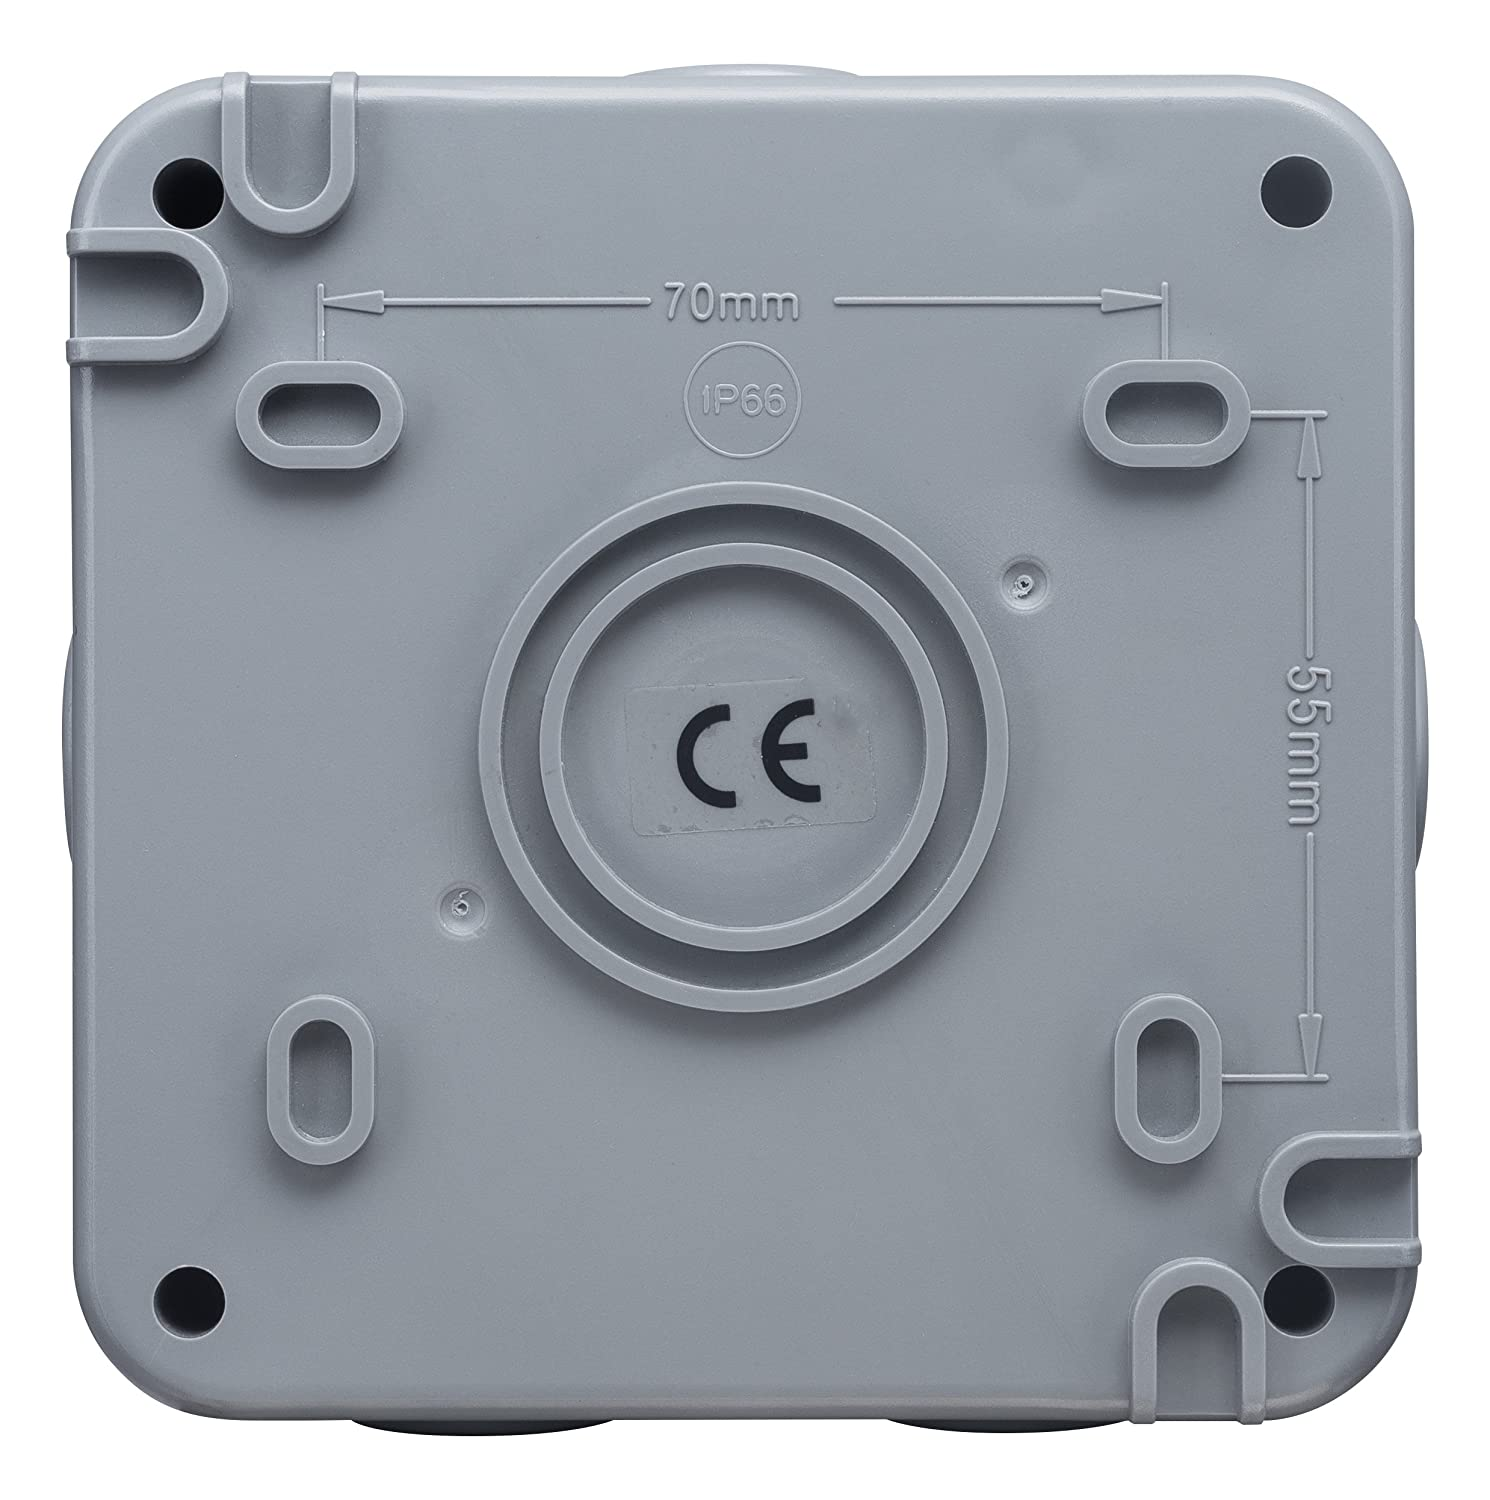 Masterplug Wpjb Outdoor Weatherproof Ip66 Junction Box 5 Pole Electrical Boxes Use Rubber Gaskets To Seal Out Weather Terminal Block Diy Tools